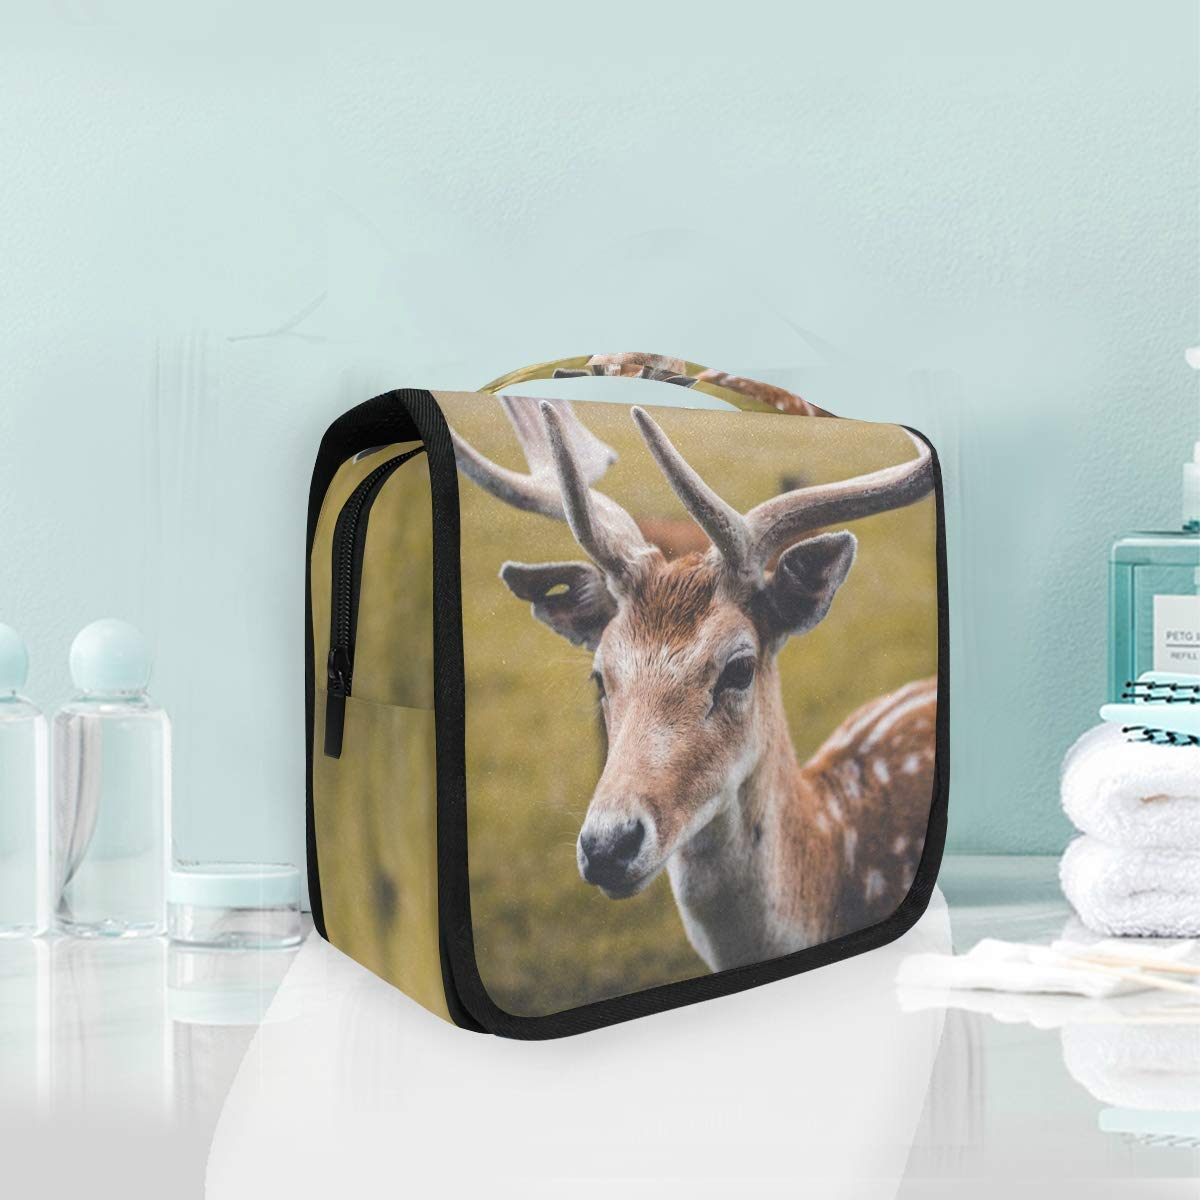 Travel Toiletry Cosmetic Bag Cute Deer Animal Hanging Shower Makeup Bag Pouch Portable Train Tote Case Organizer Storage For Women Girls